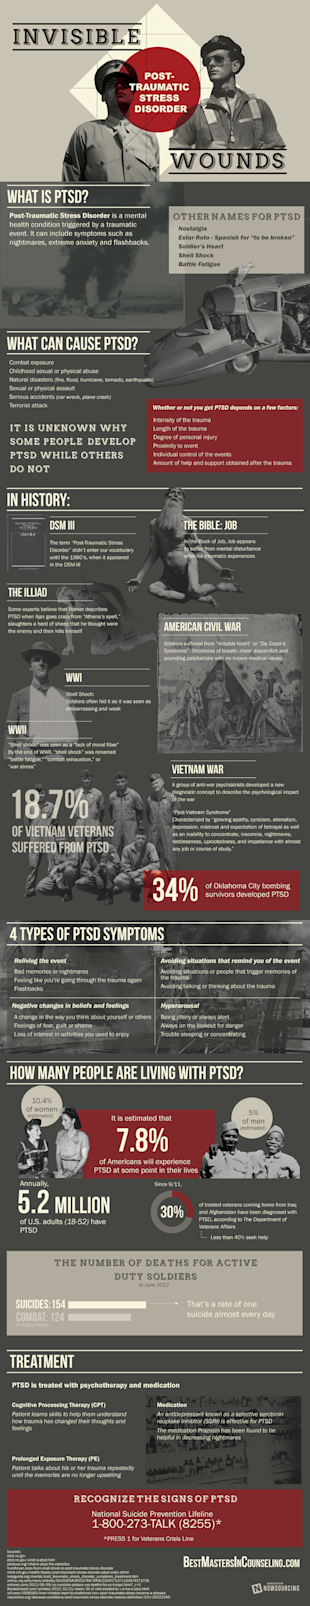 The Invisible Wounds of Post Traumatic Stress Disorder [Infographic] image PTSD2